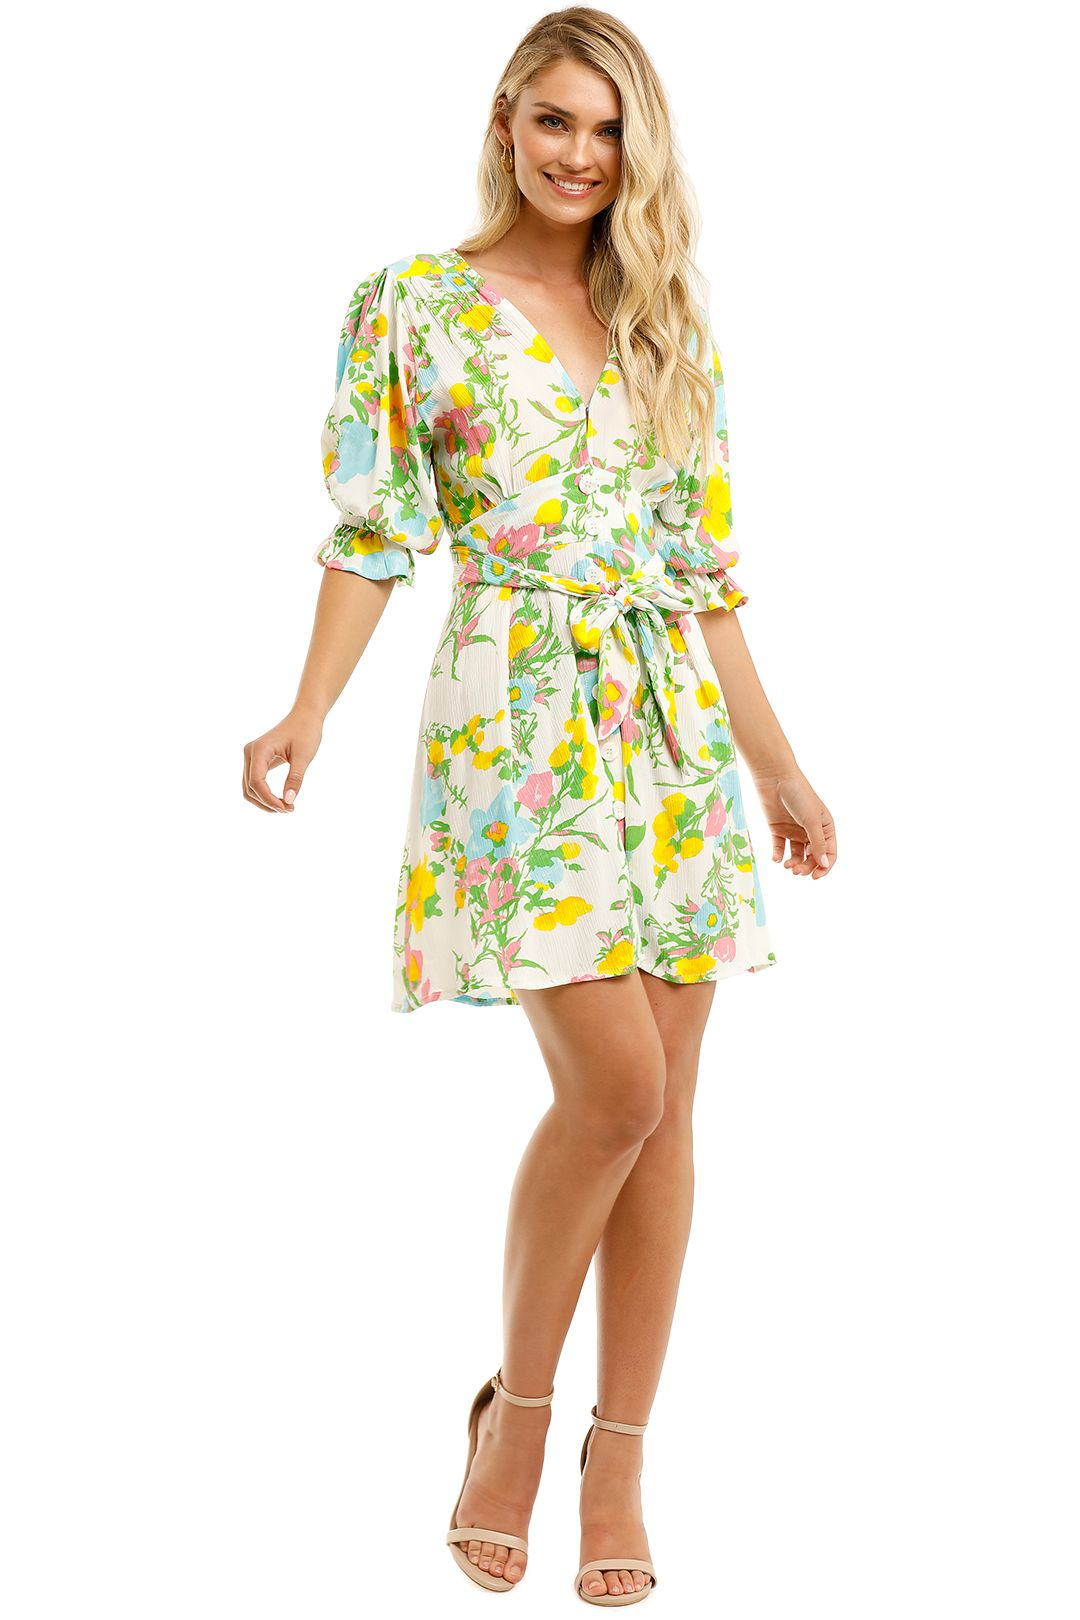 Faithfull-Caliente-Mini-Dress-Ilona-Floral-Print-Front